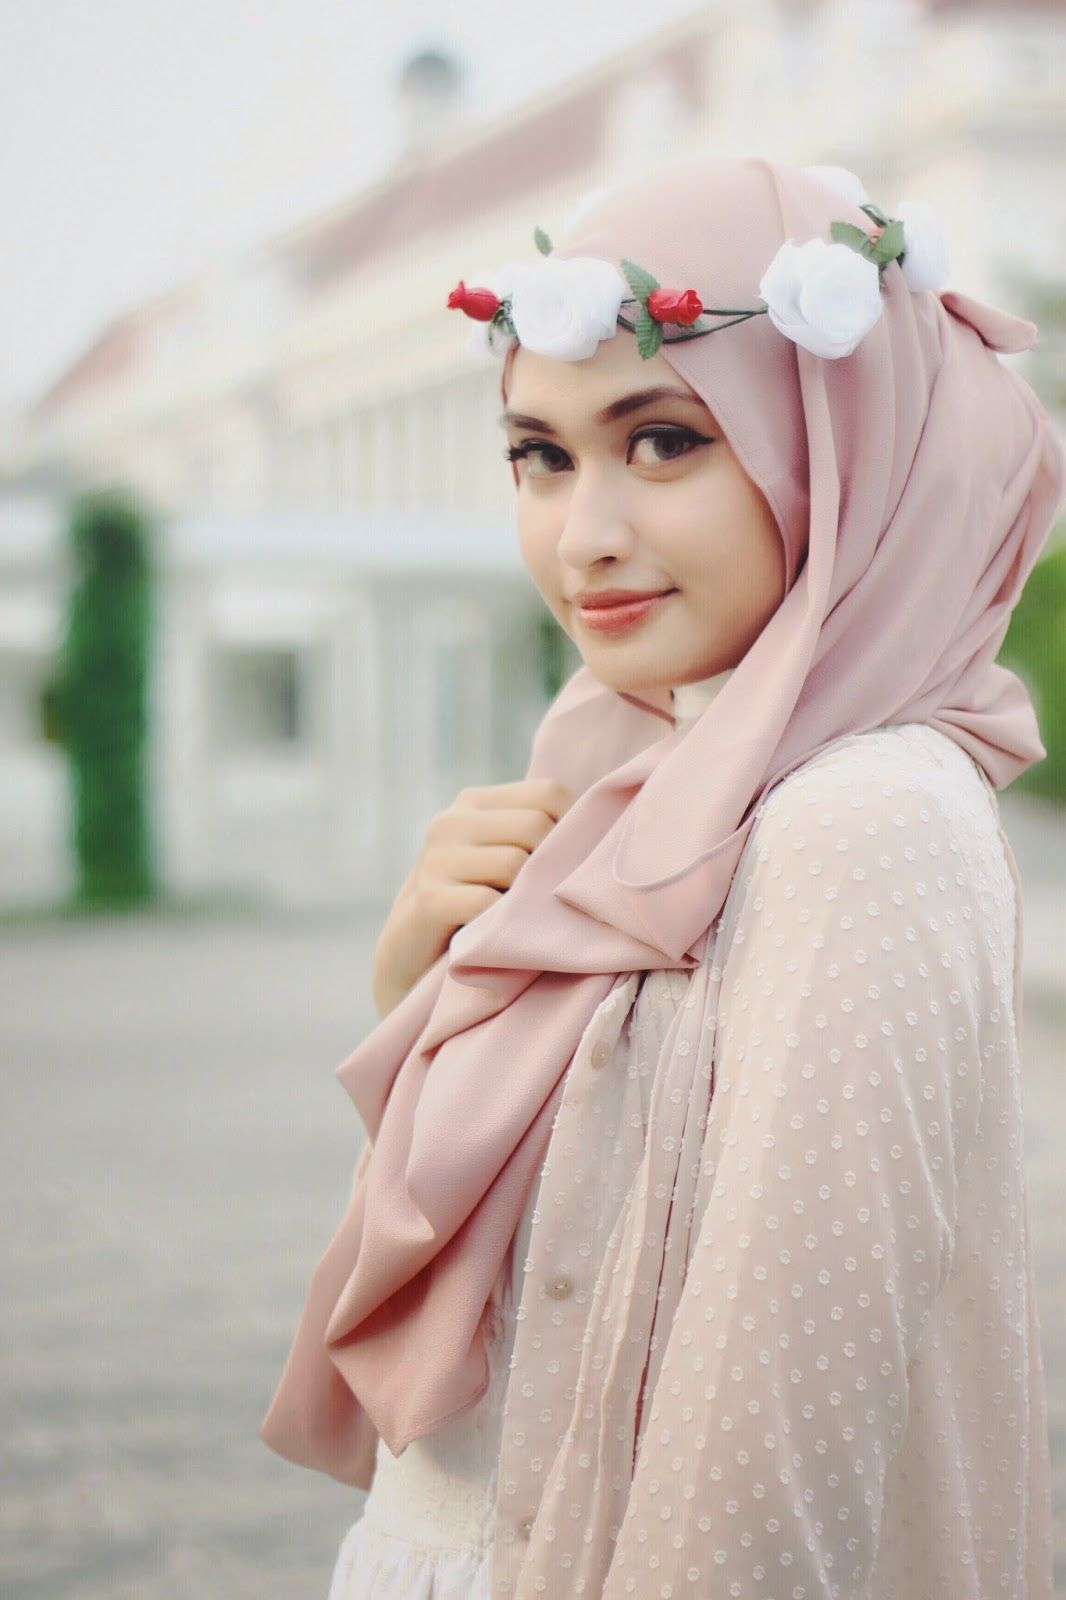 A L Z T H Jr Hijab Because Woman Are Diamond In 2018 Batik Wanita Coklat Bc 40 By Nby